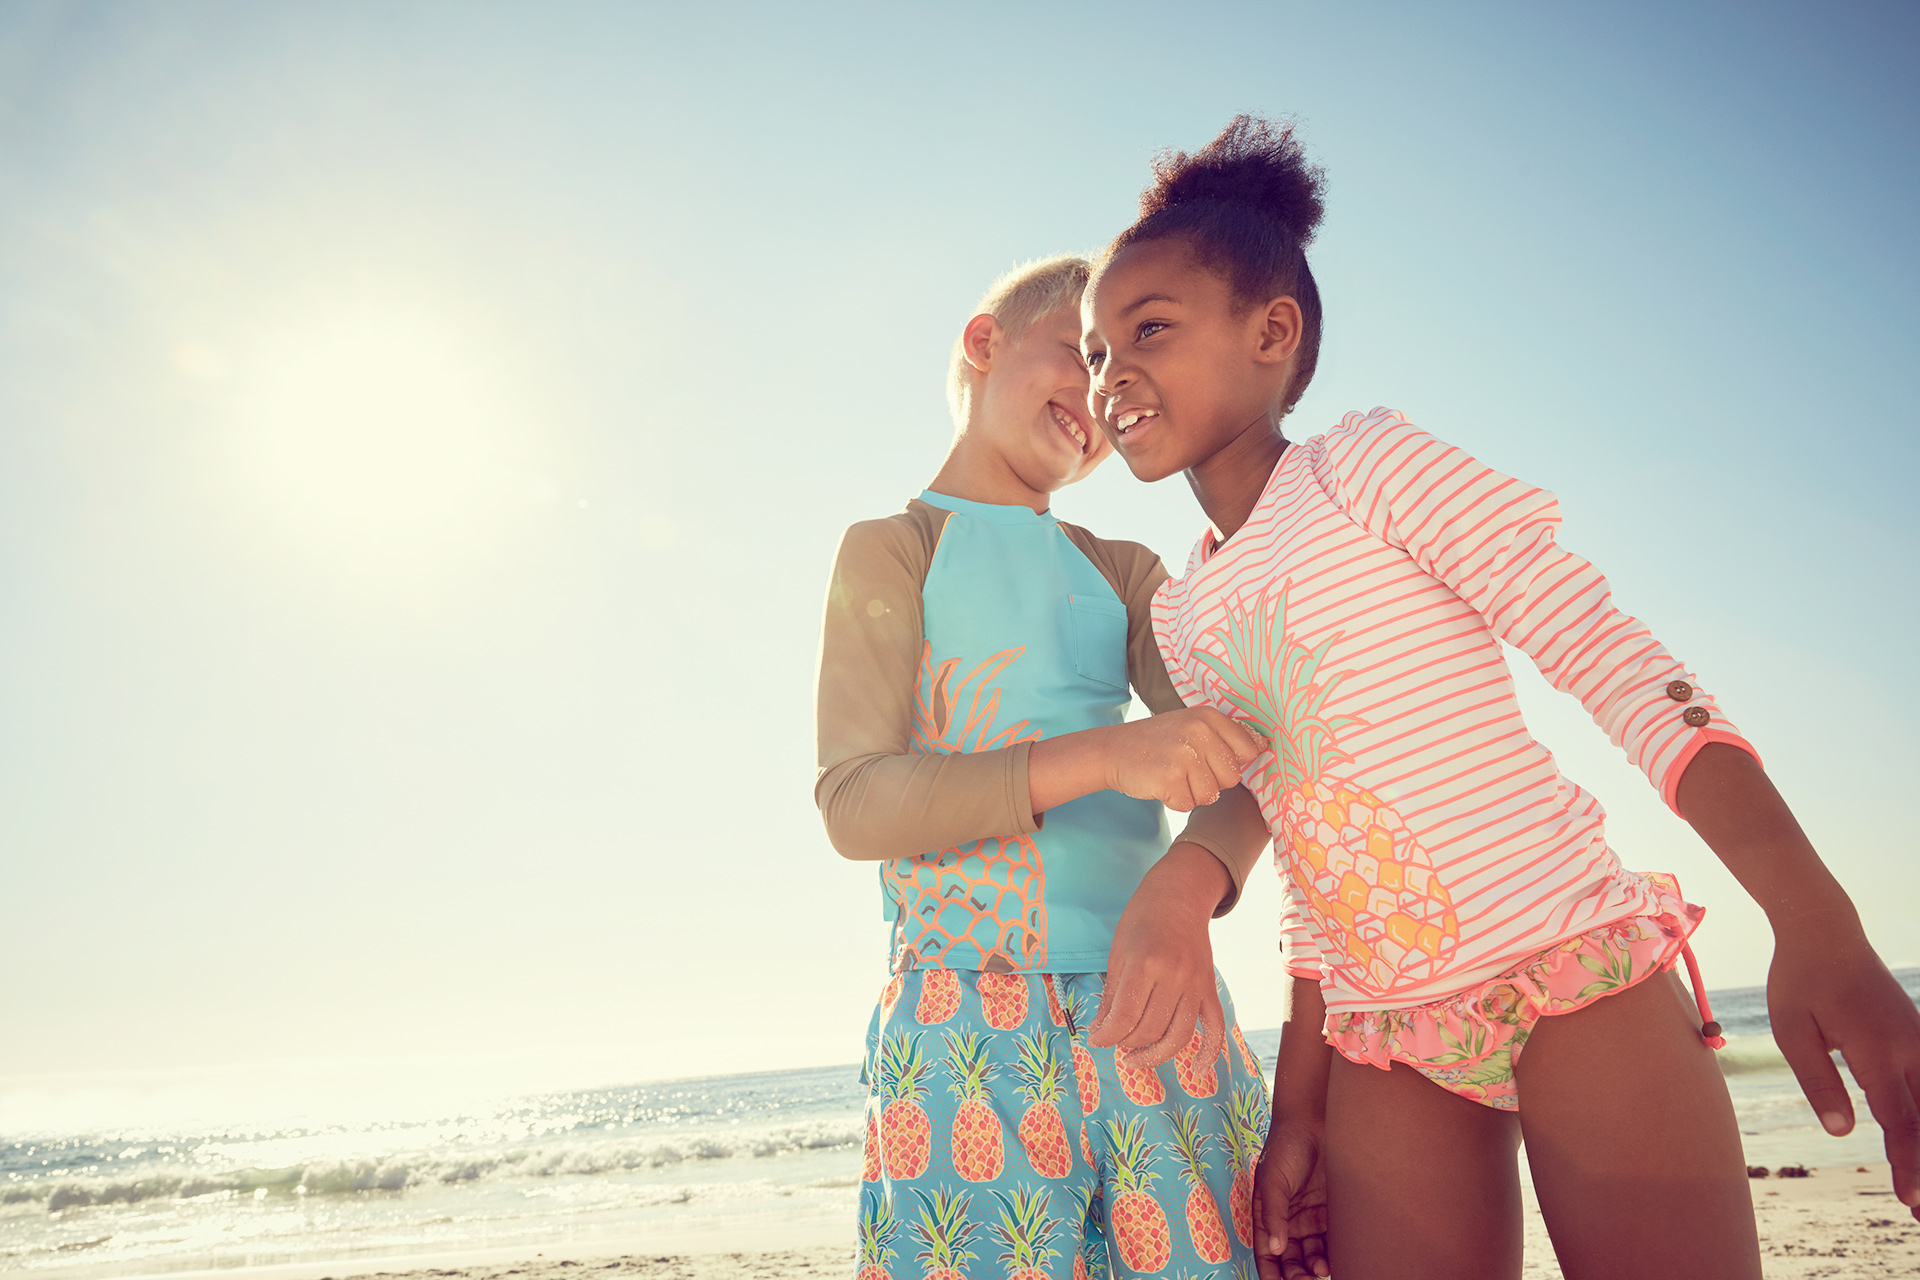 friends of beach kids fashion swimwear whispering